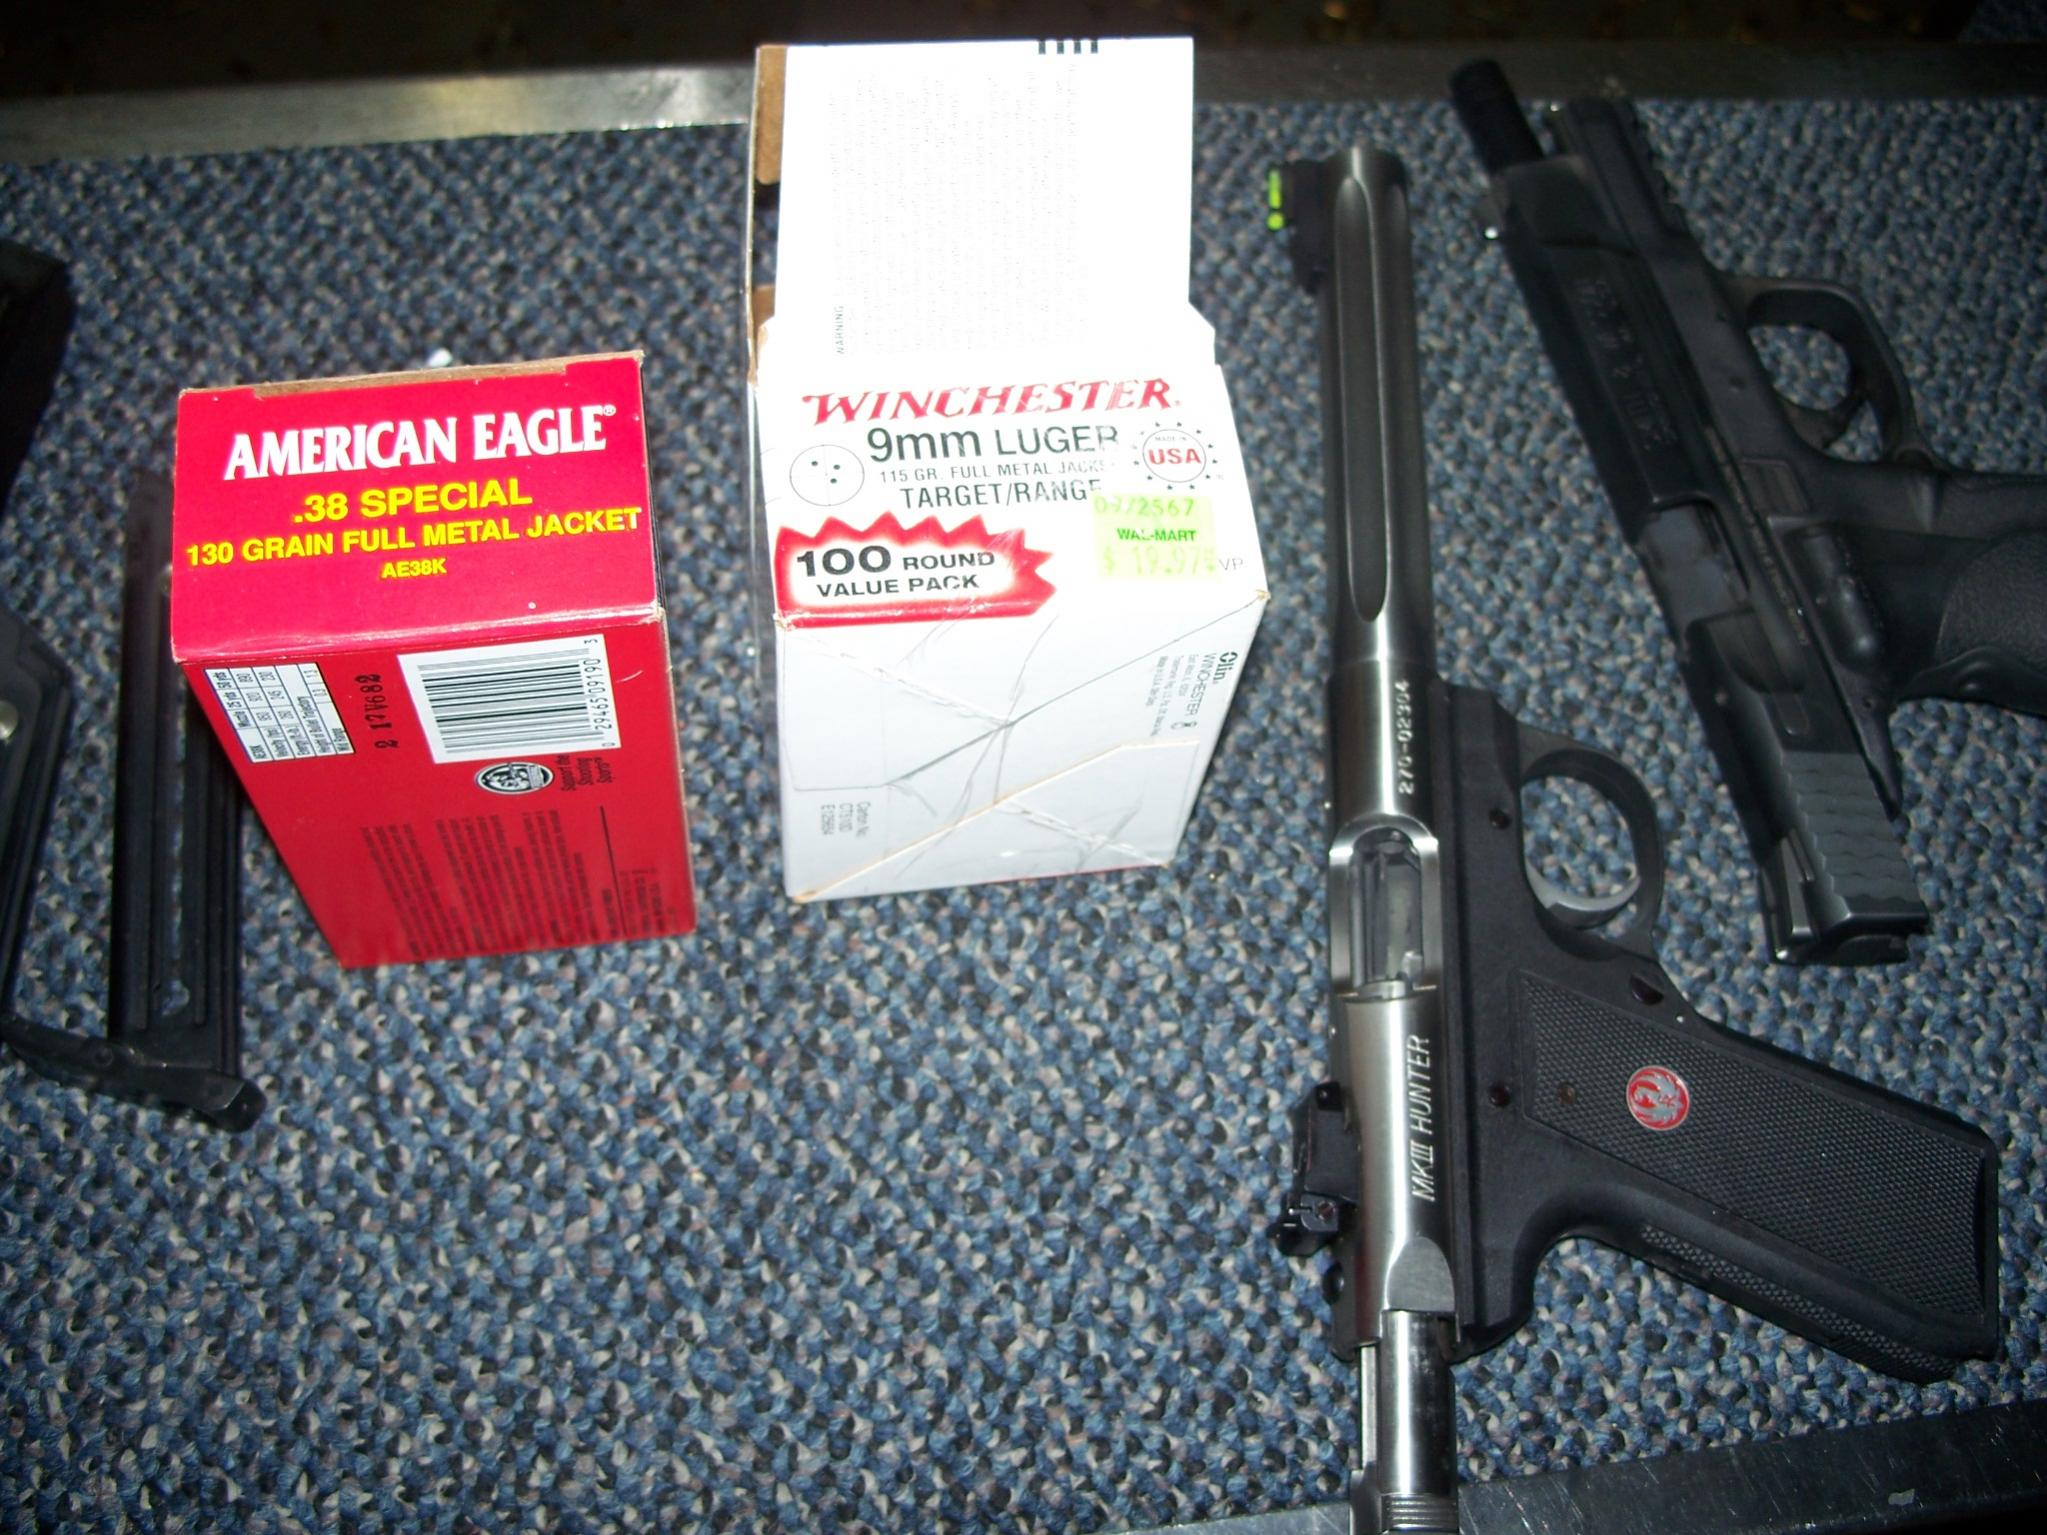 My trip to the range with pics-101_6180.jpg